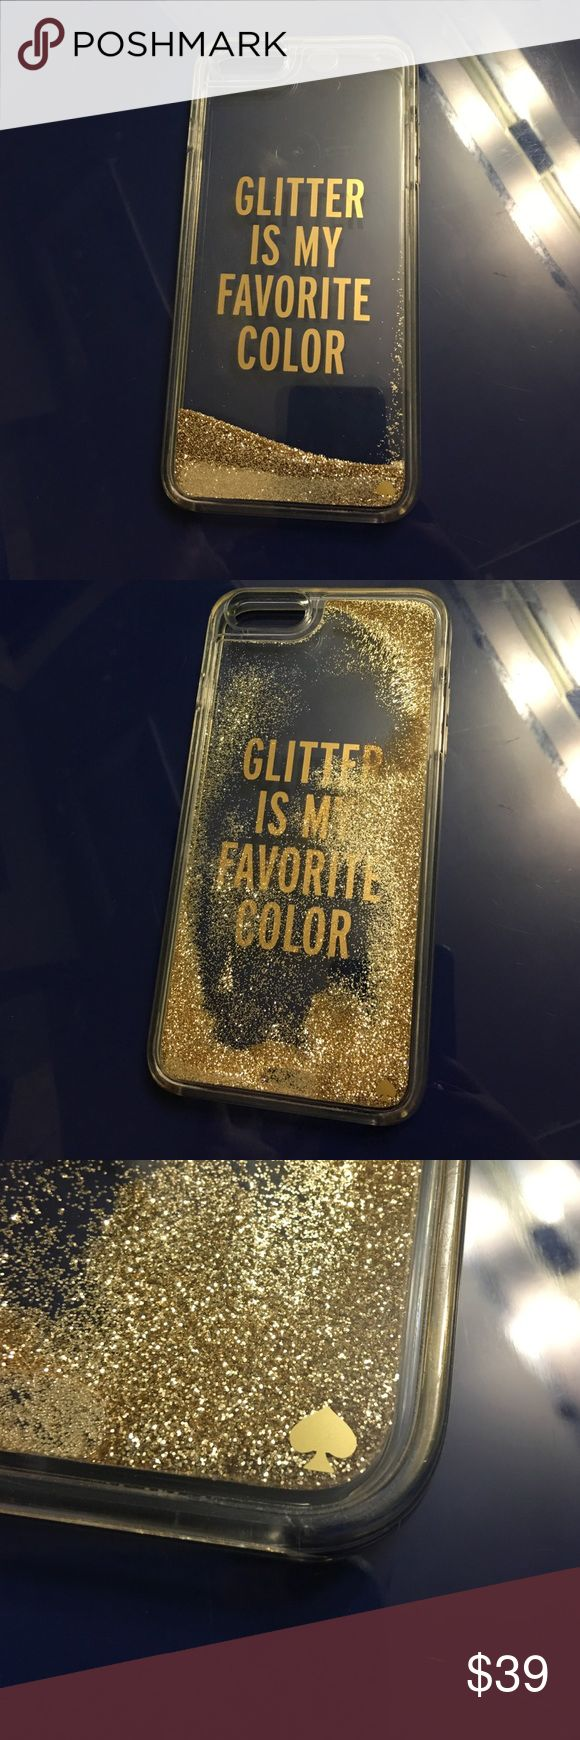 "Kate Spade iPhone 6/6S PLUS CASE Has been used several times, has scratches (hairline) all over phone case. Super cute kate spade case with gold glitter and writing. Glitter moves when tilting the case. It says ""Glitter is my favorite color"" perfect for any girl! Retails for $60 kate spade Accessories Phone Cases"